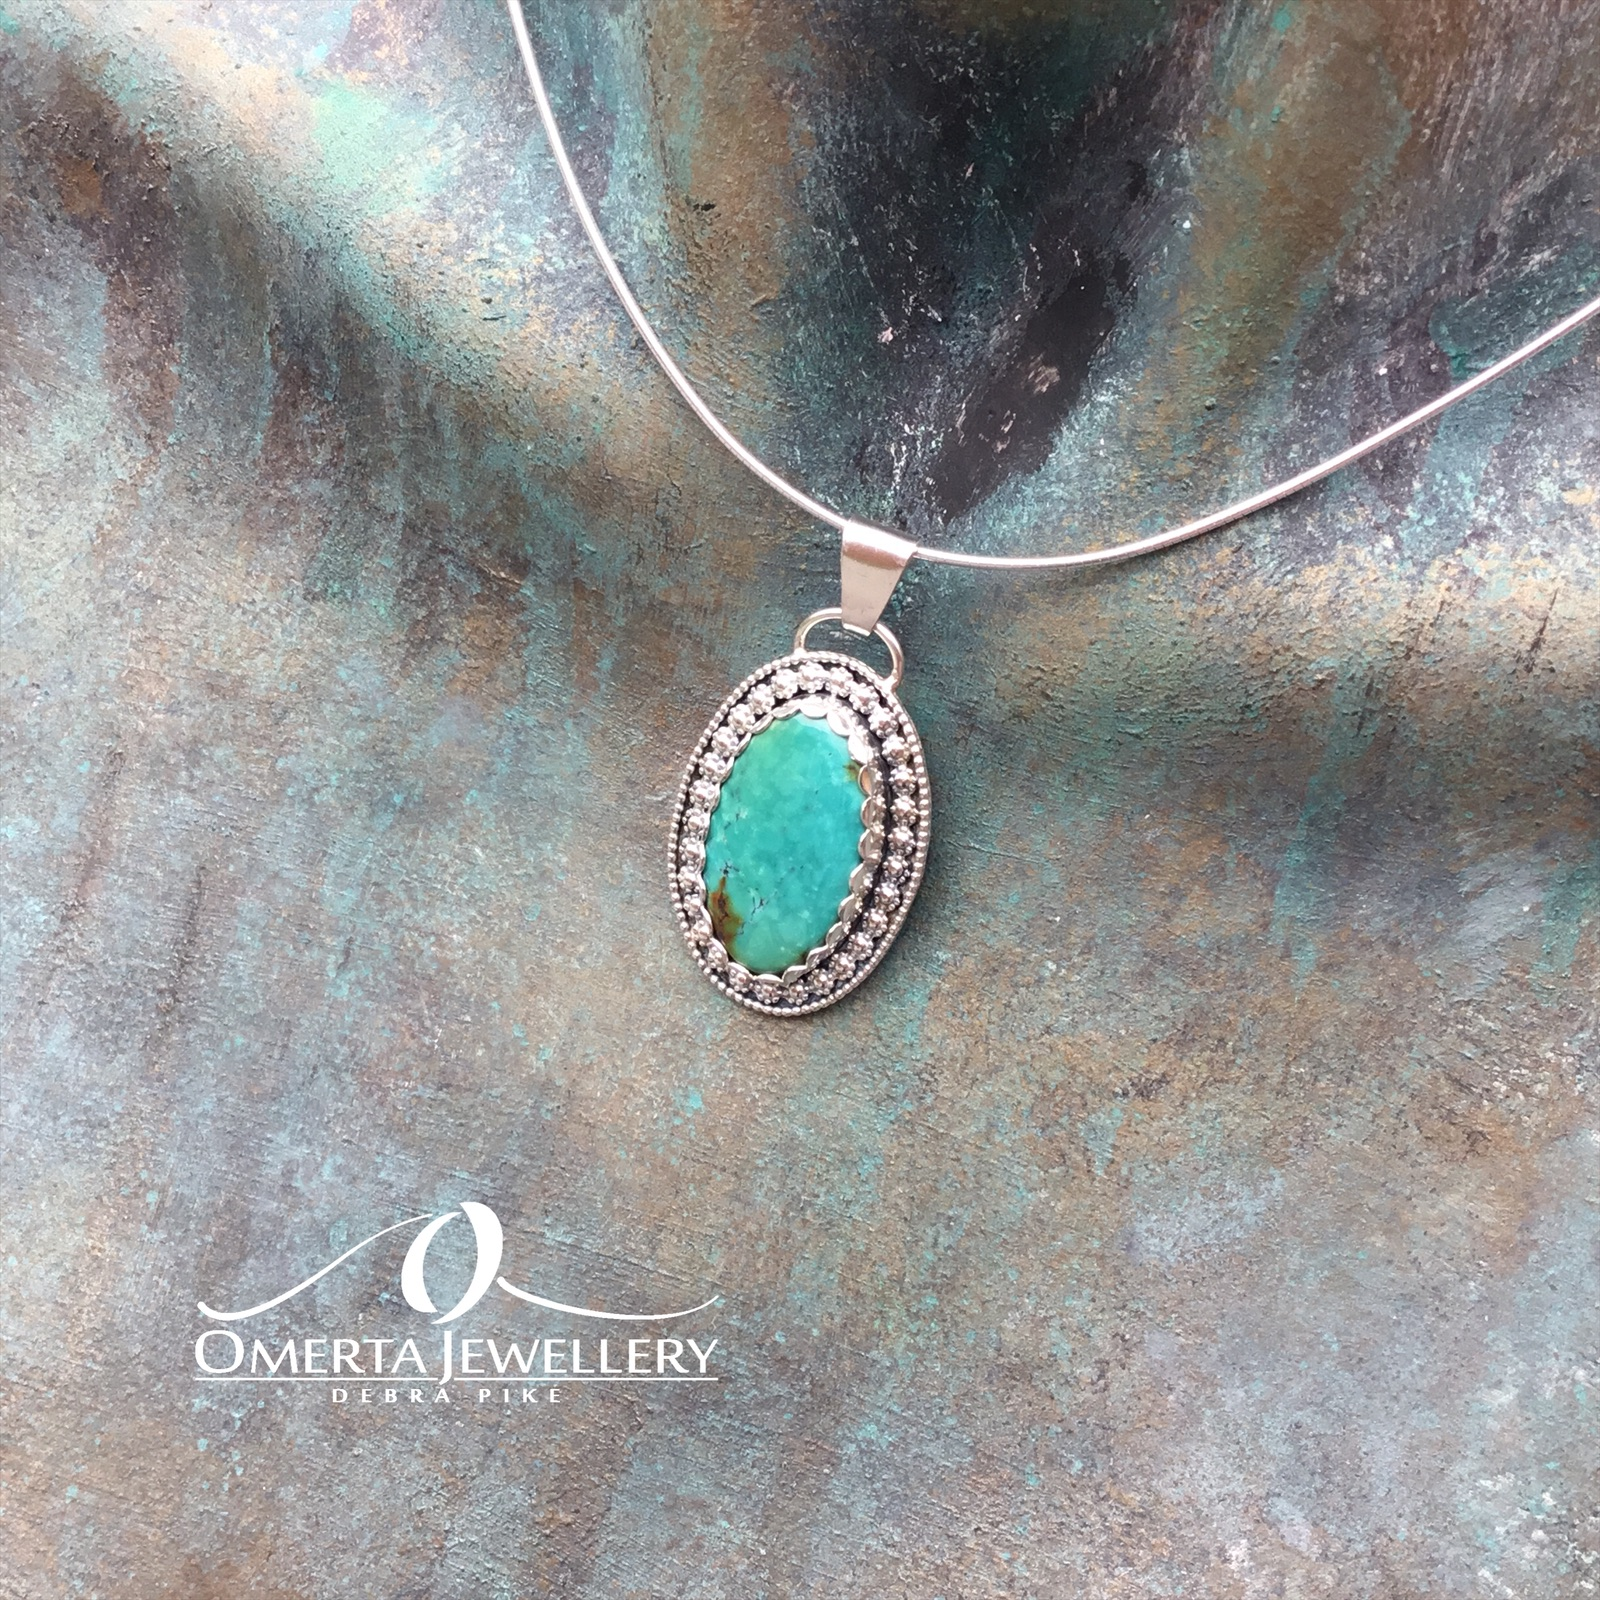 Vintage Style Bao Canyon Turquoise Necklace